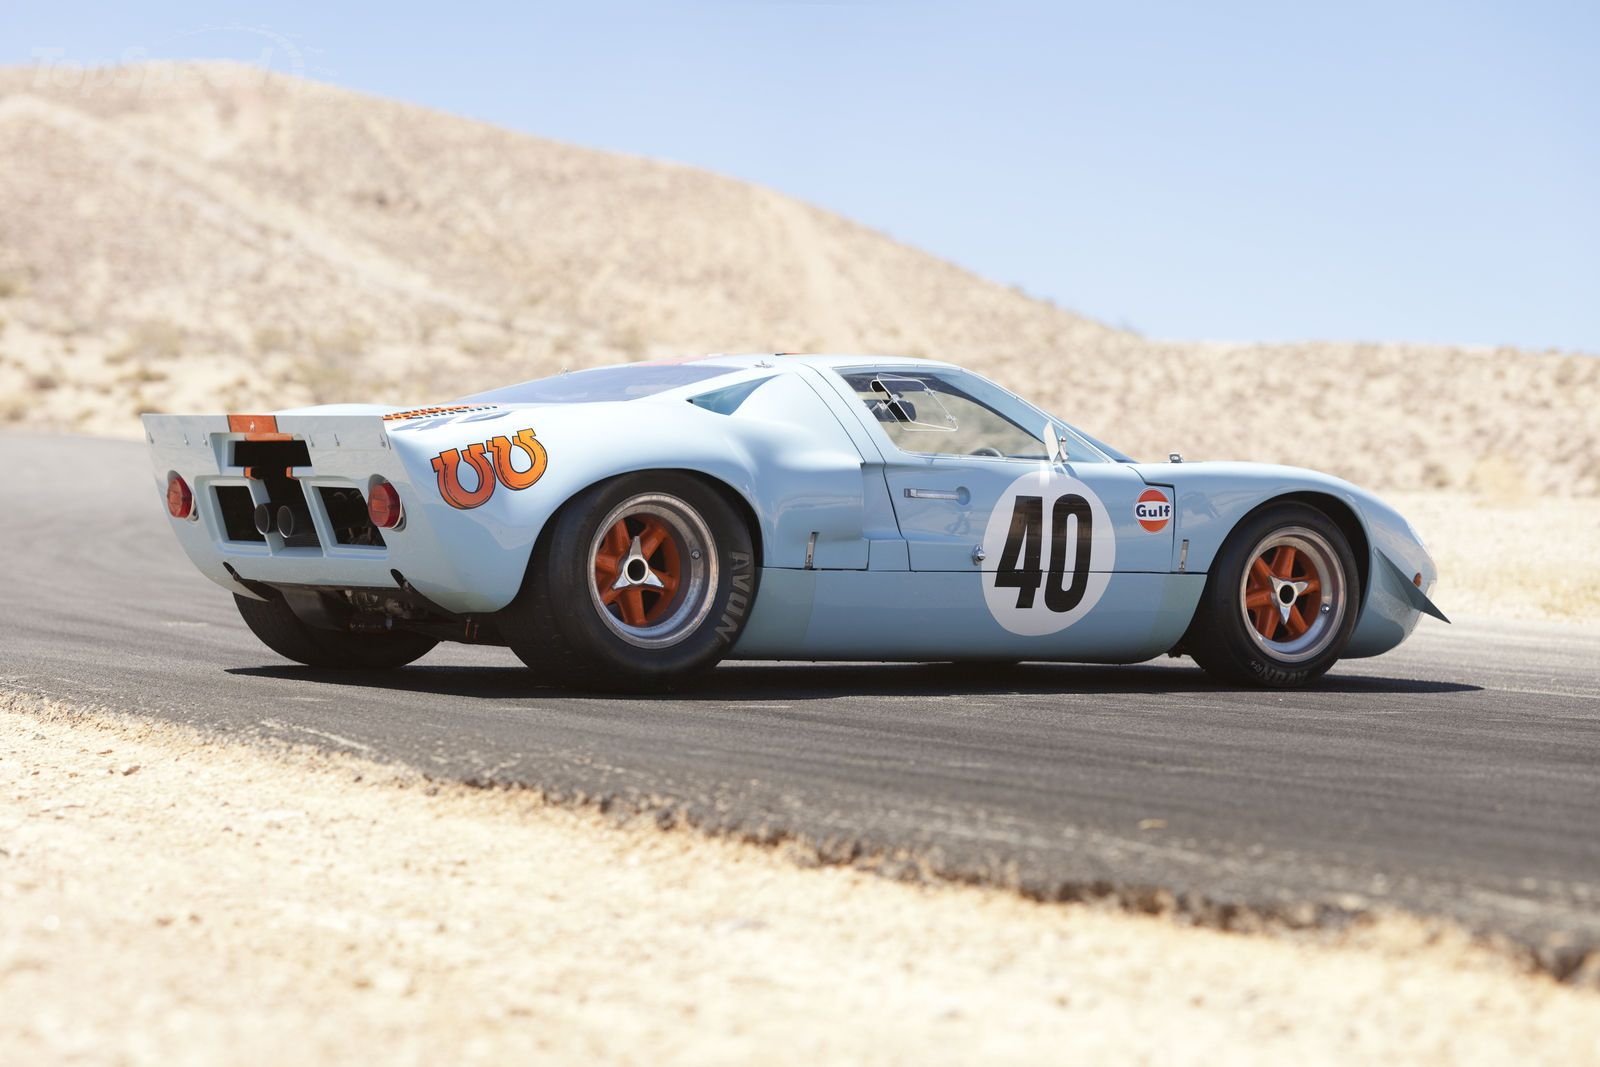 1964 1969 Ford Gt40 Gallery 469608 Ford Gt40 Ford Gt Gt40